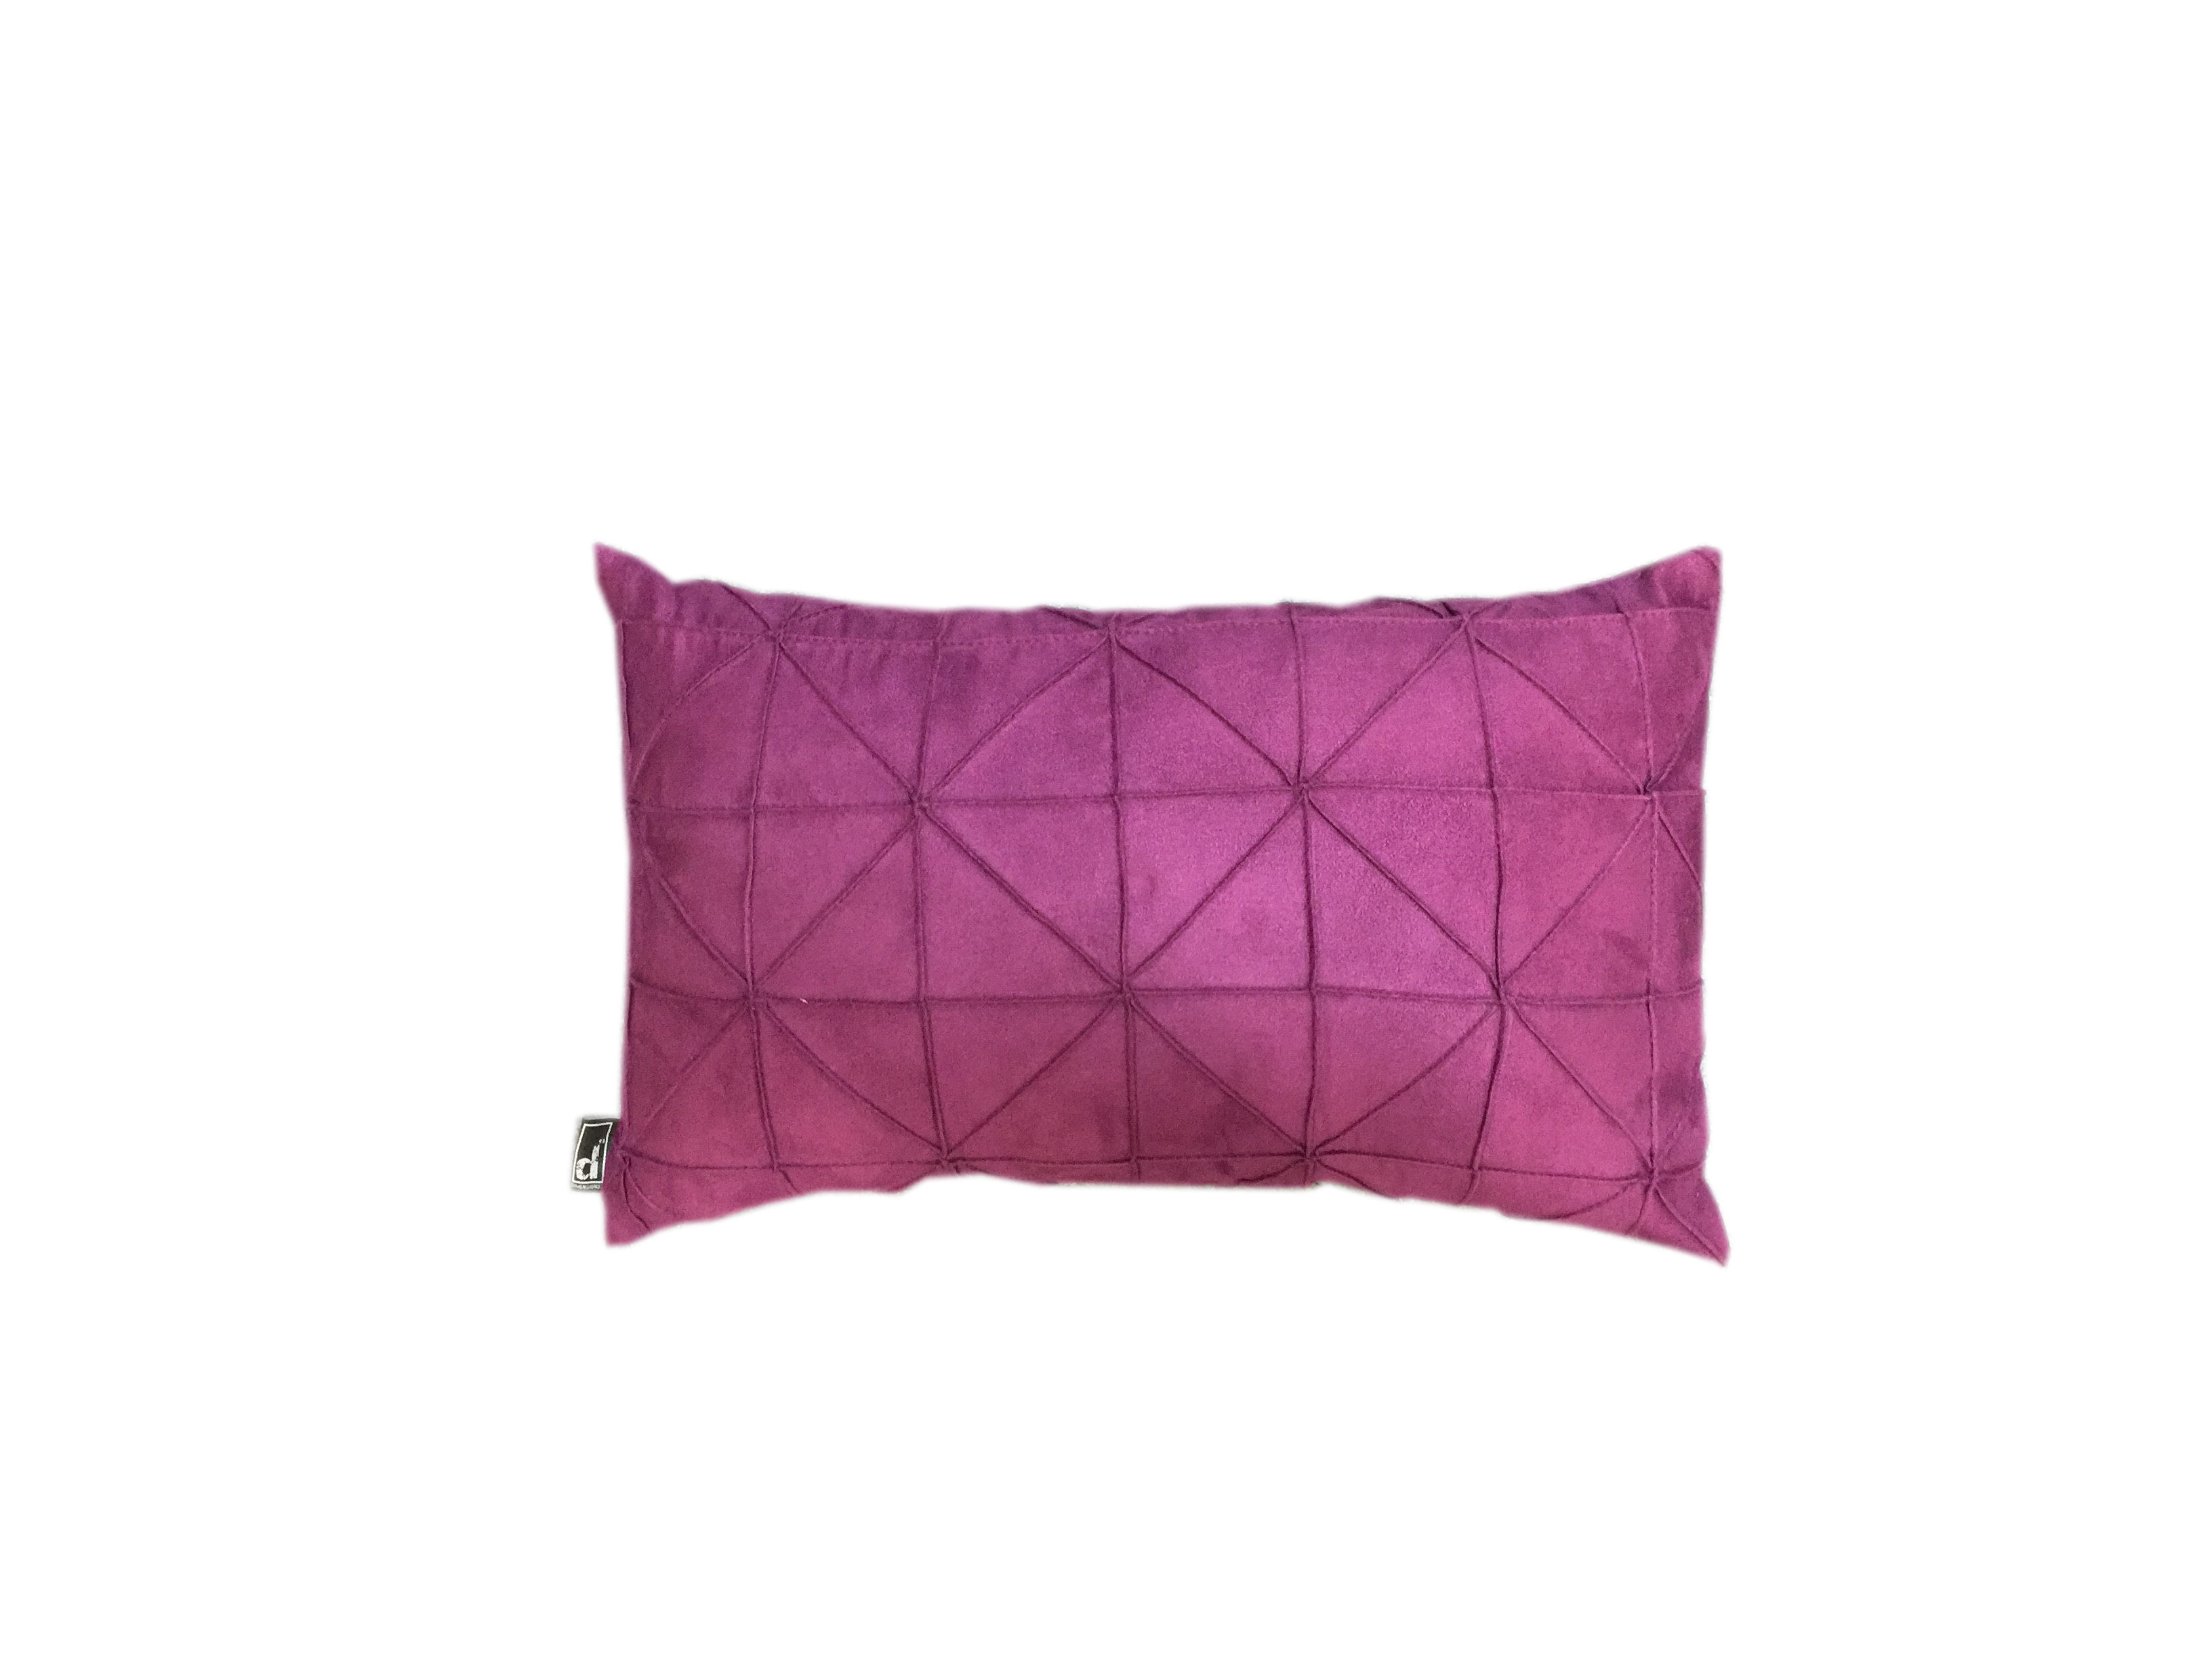 30x50 Oblong Cushion - Textured Triangles